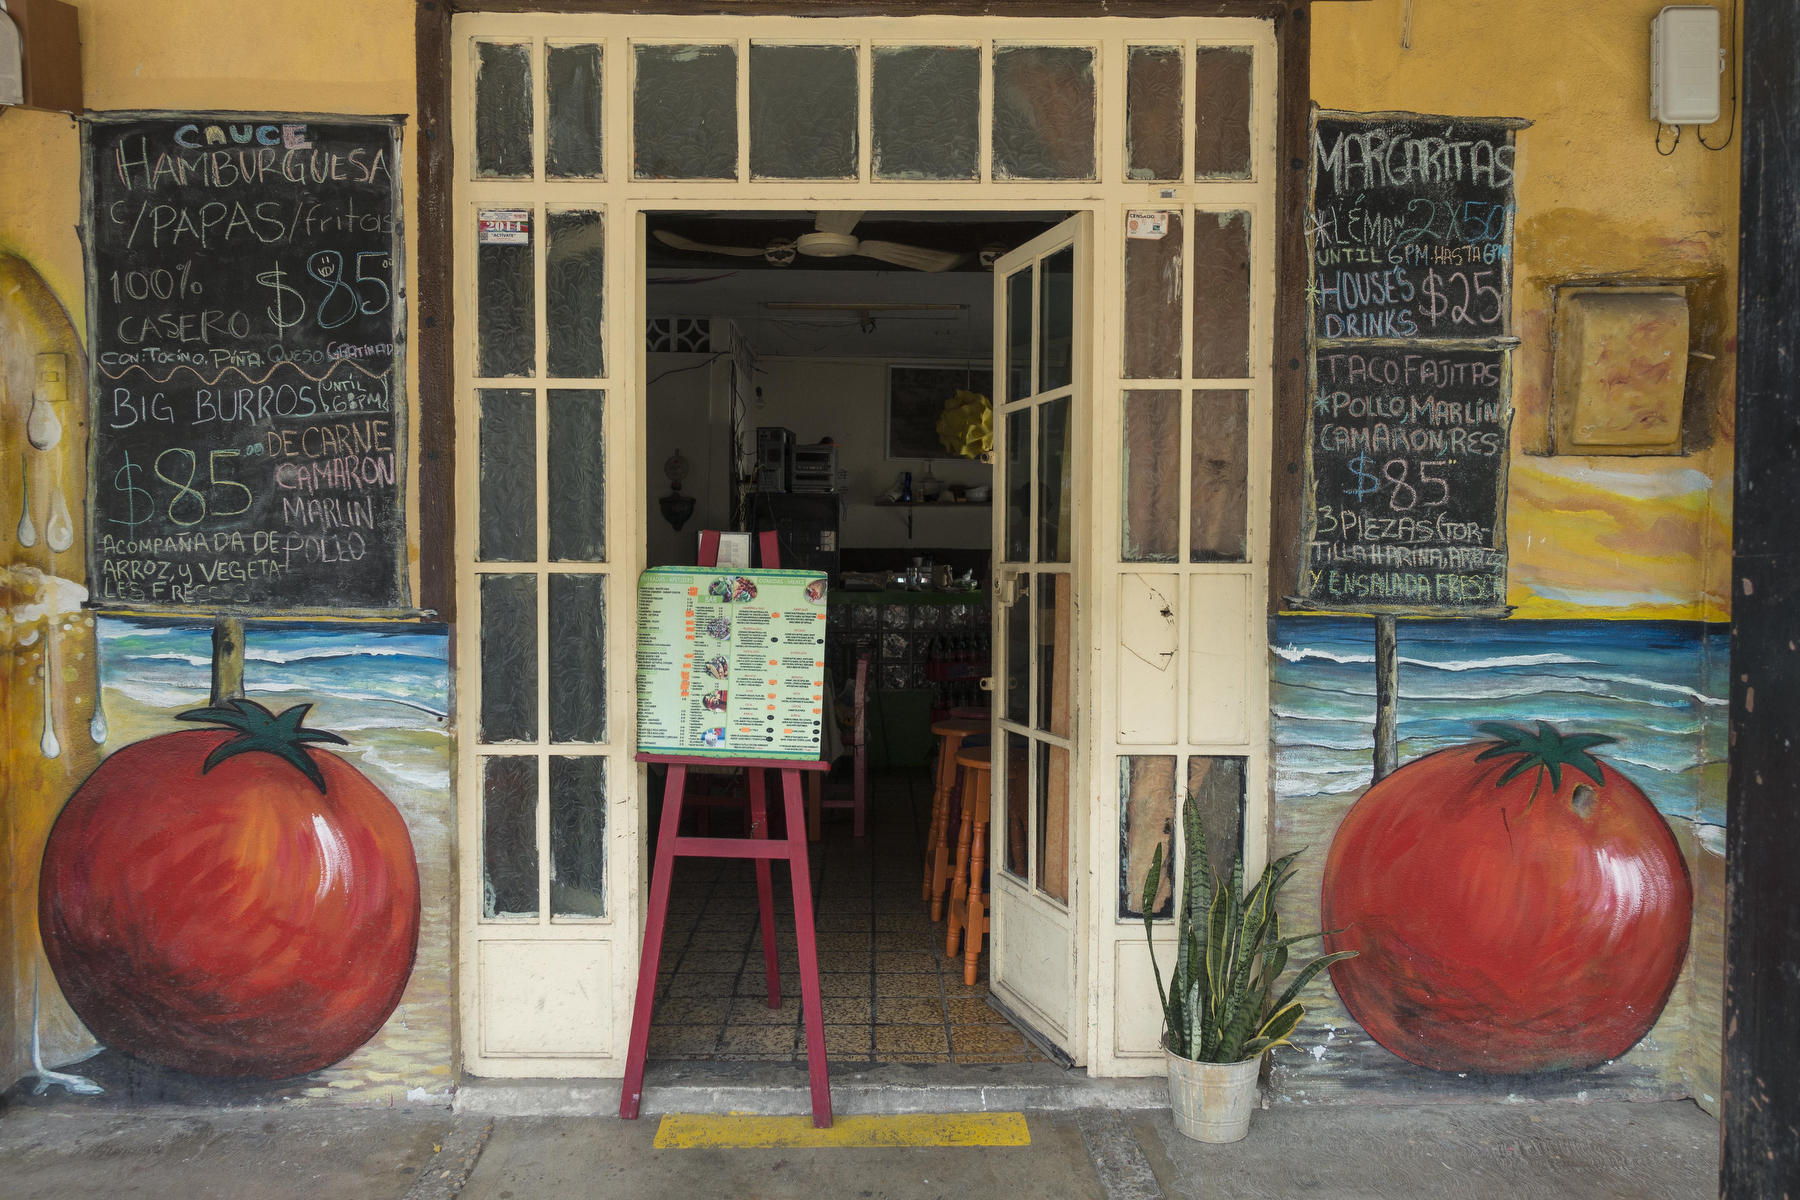 Cauce restaurant in Old Town features giant painted tomatoes on each side of the entrance door. : PUERTO VALLARTA - Wall Art & Bicycle Tour : Viviane Moos |  Documentary Photographer